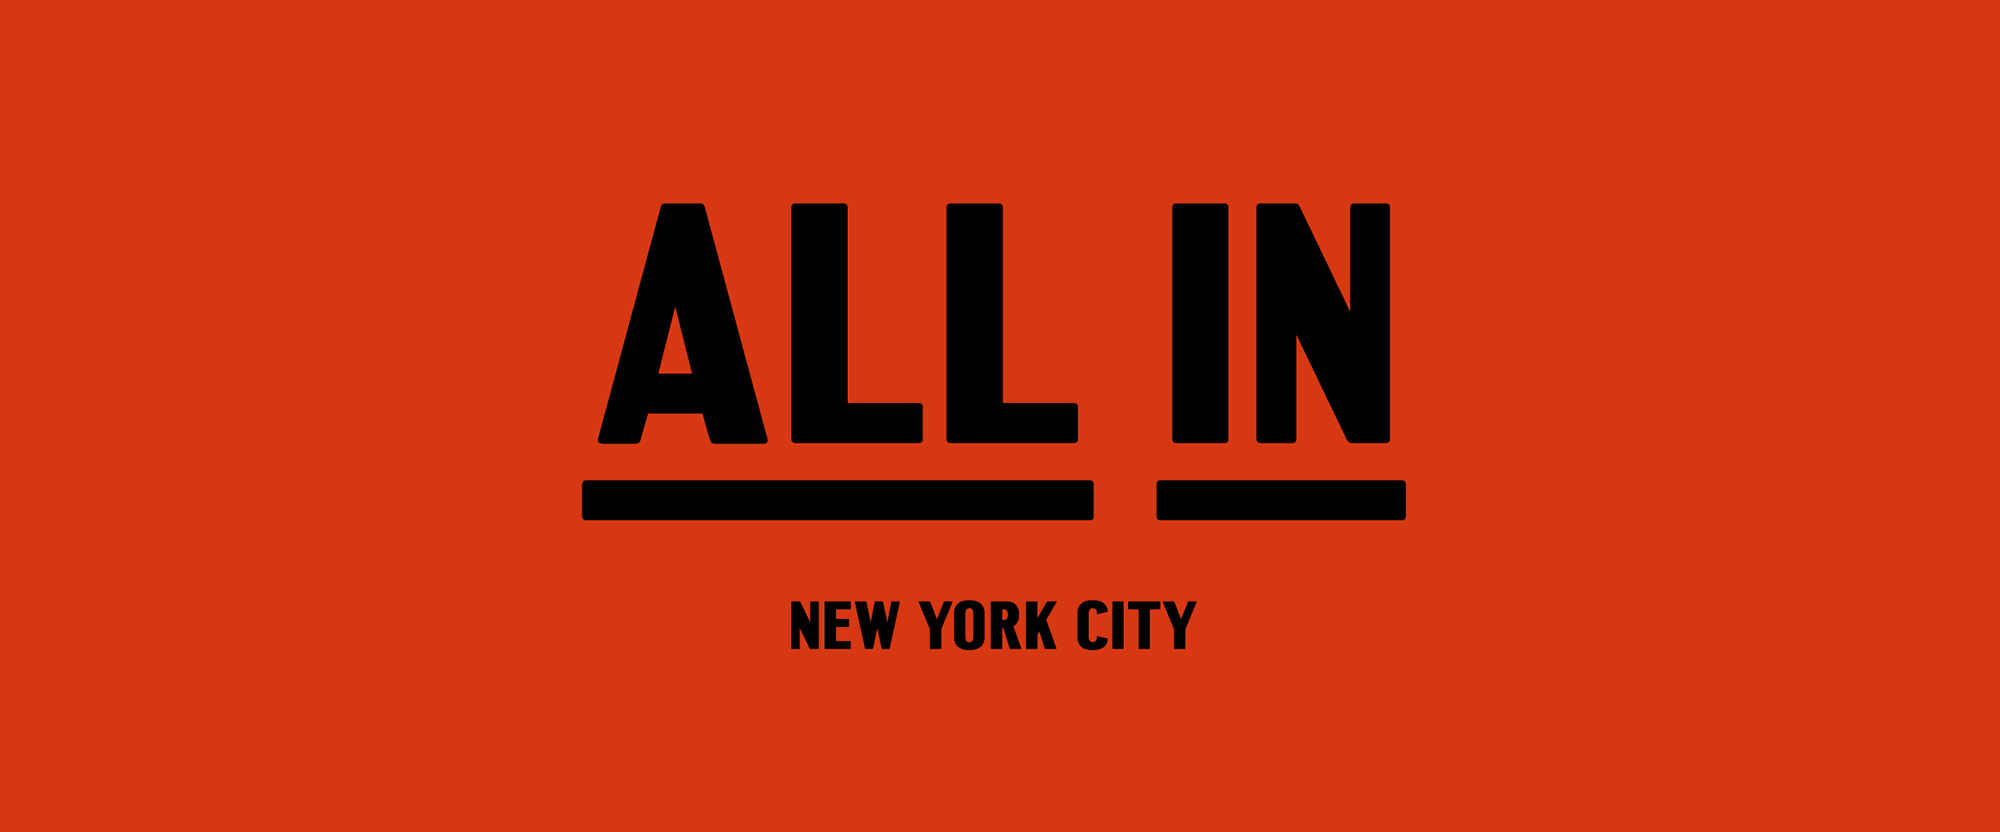 New Logo and Campaign for All in NYC by Aruliden